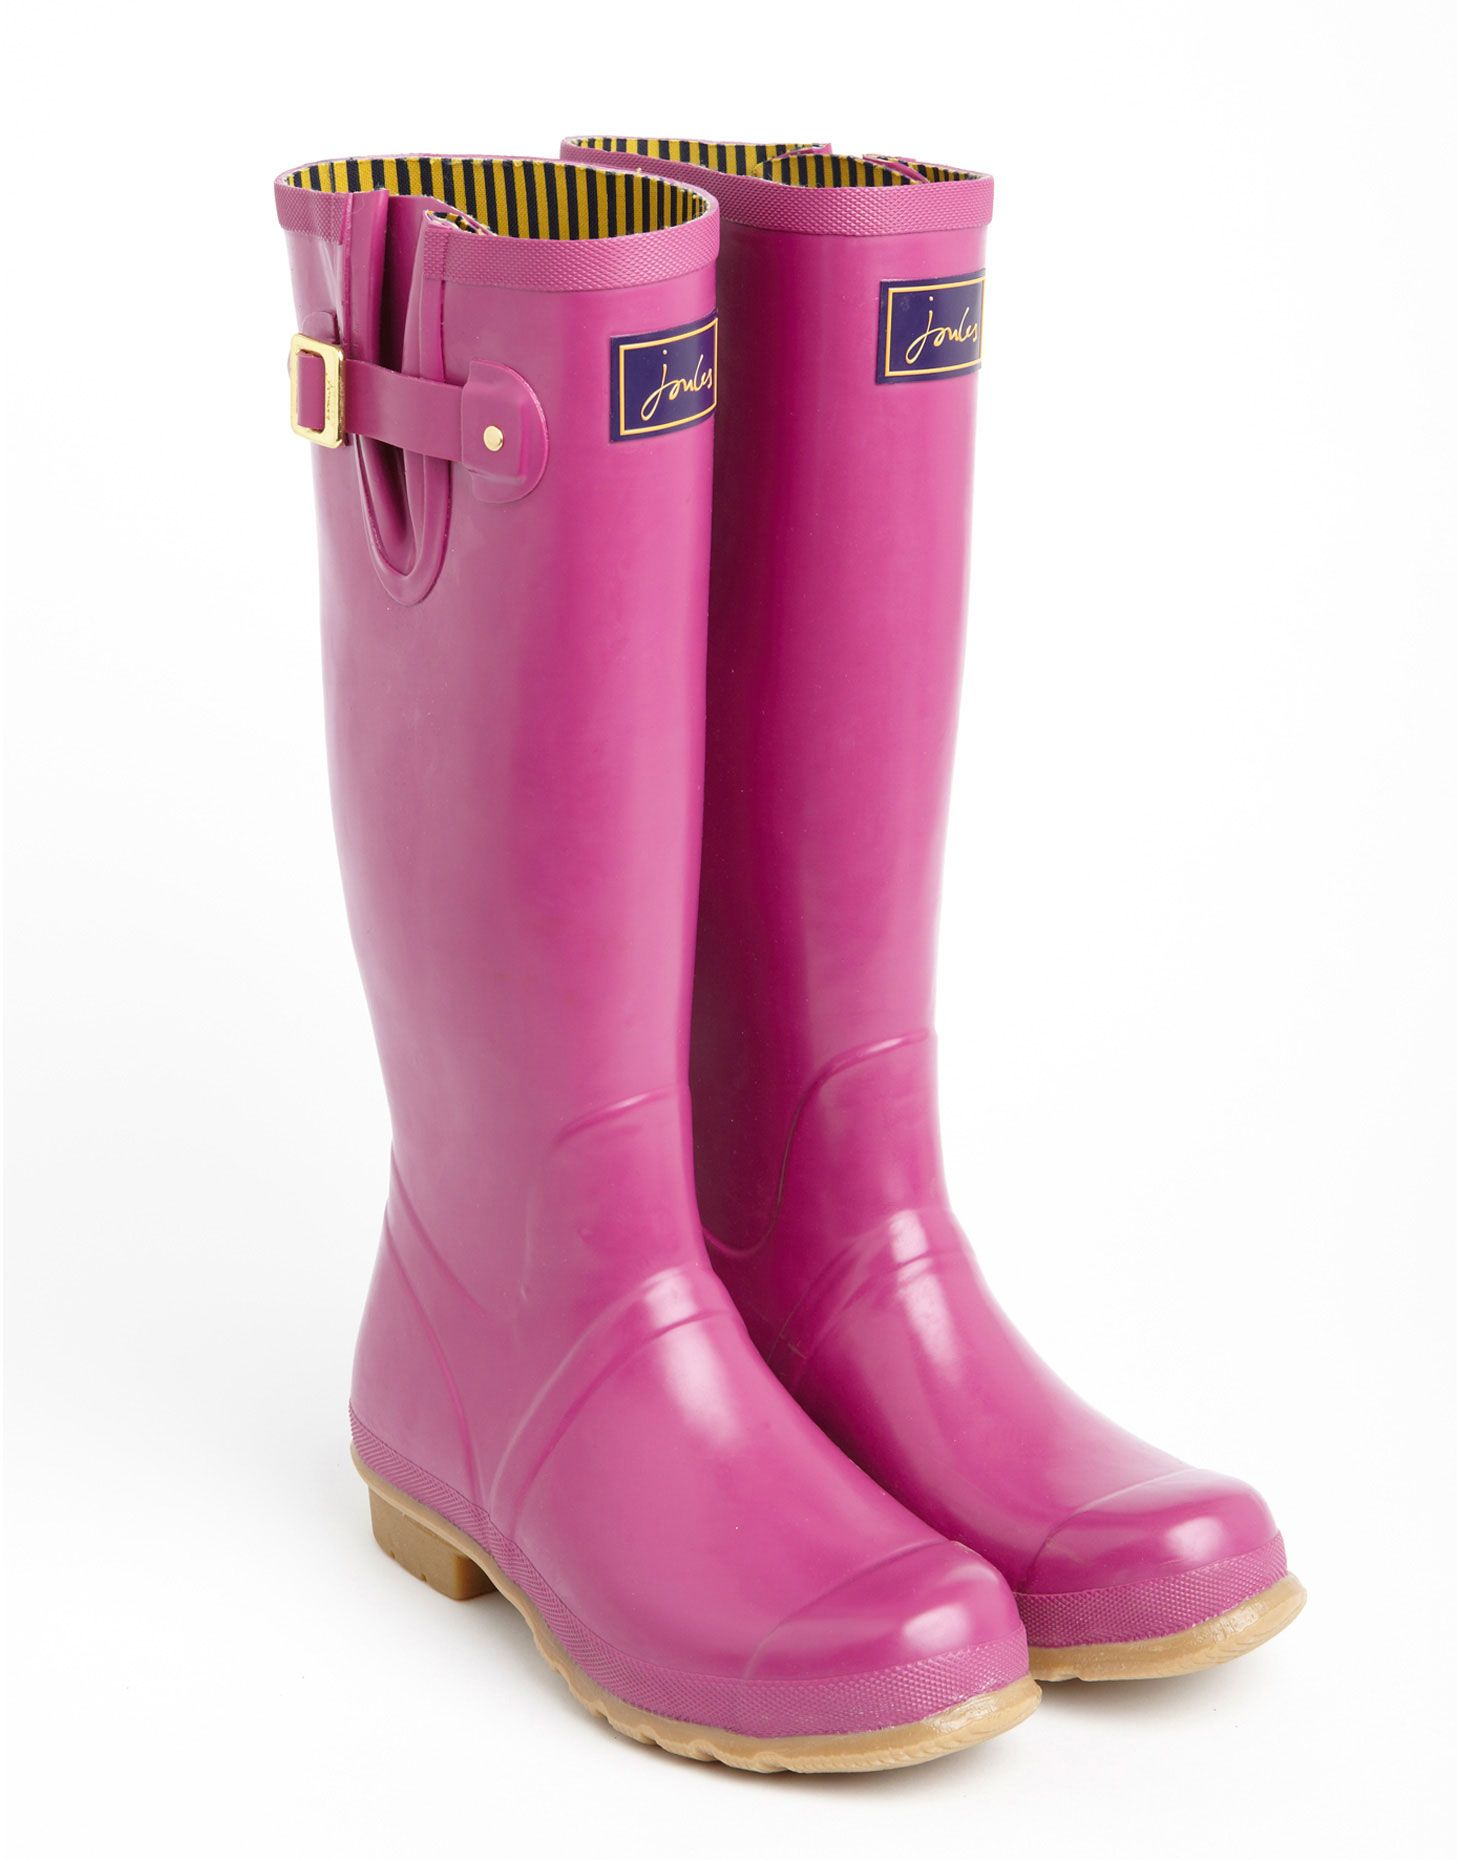 1000  images about rainboots on Pinterest | Women's rain boots ...